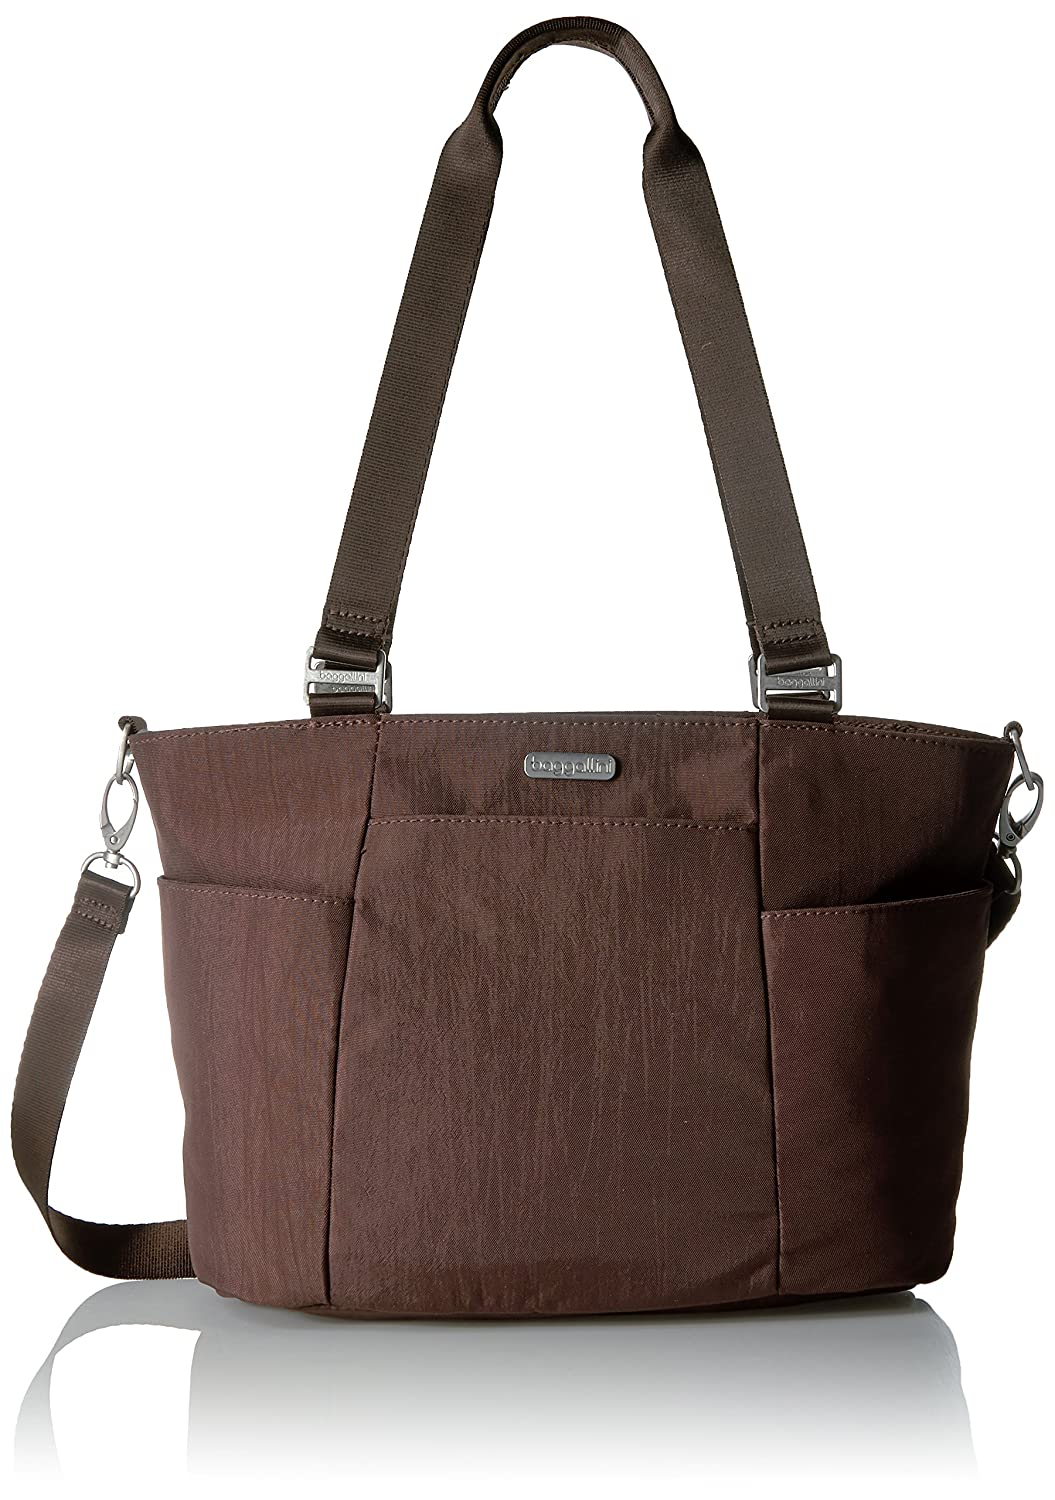 Baggallini Medium Avenue Tote Black/Sand Java One Size (Model:AVE103-Java) FAT17 AVE103B0221